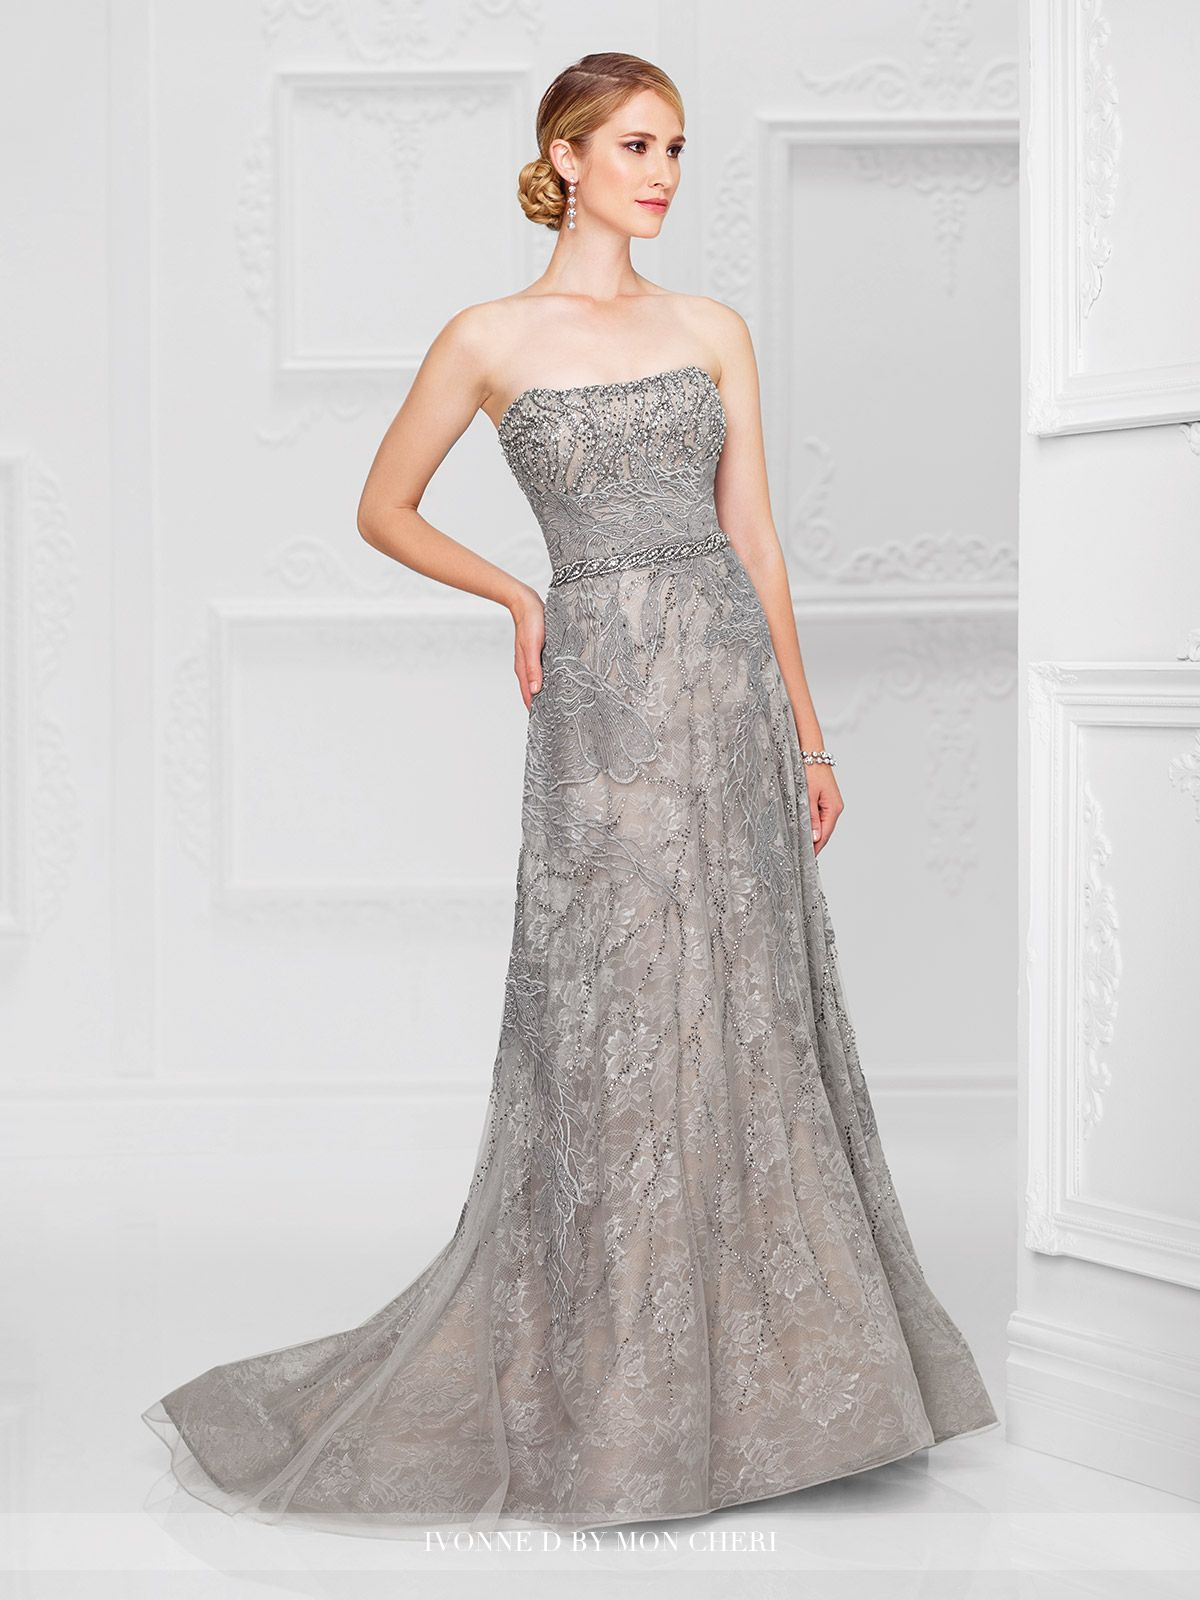 Strapless embroidered tulle A-line gown with hand-beaded curved neckline, beaded natural waistband, horsehair hemline, sweep train. Removable straps included. Sizes: 4 – 20 Colors: Gray, Navy Blue